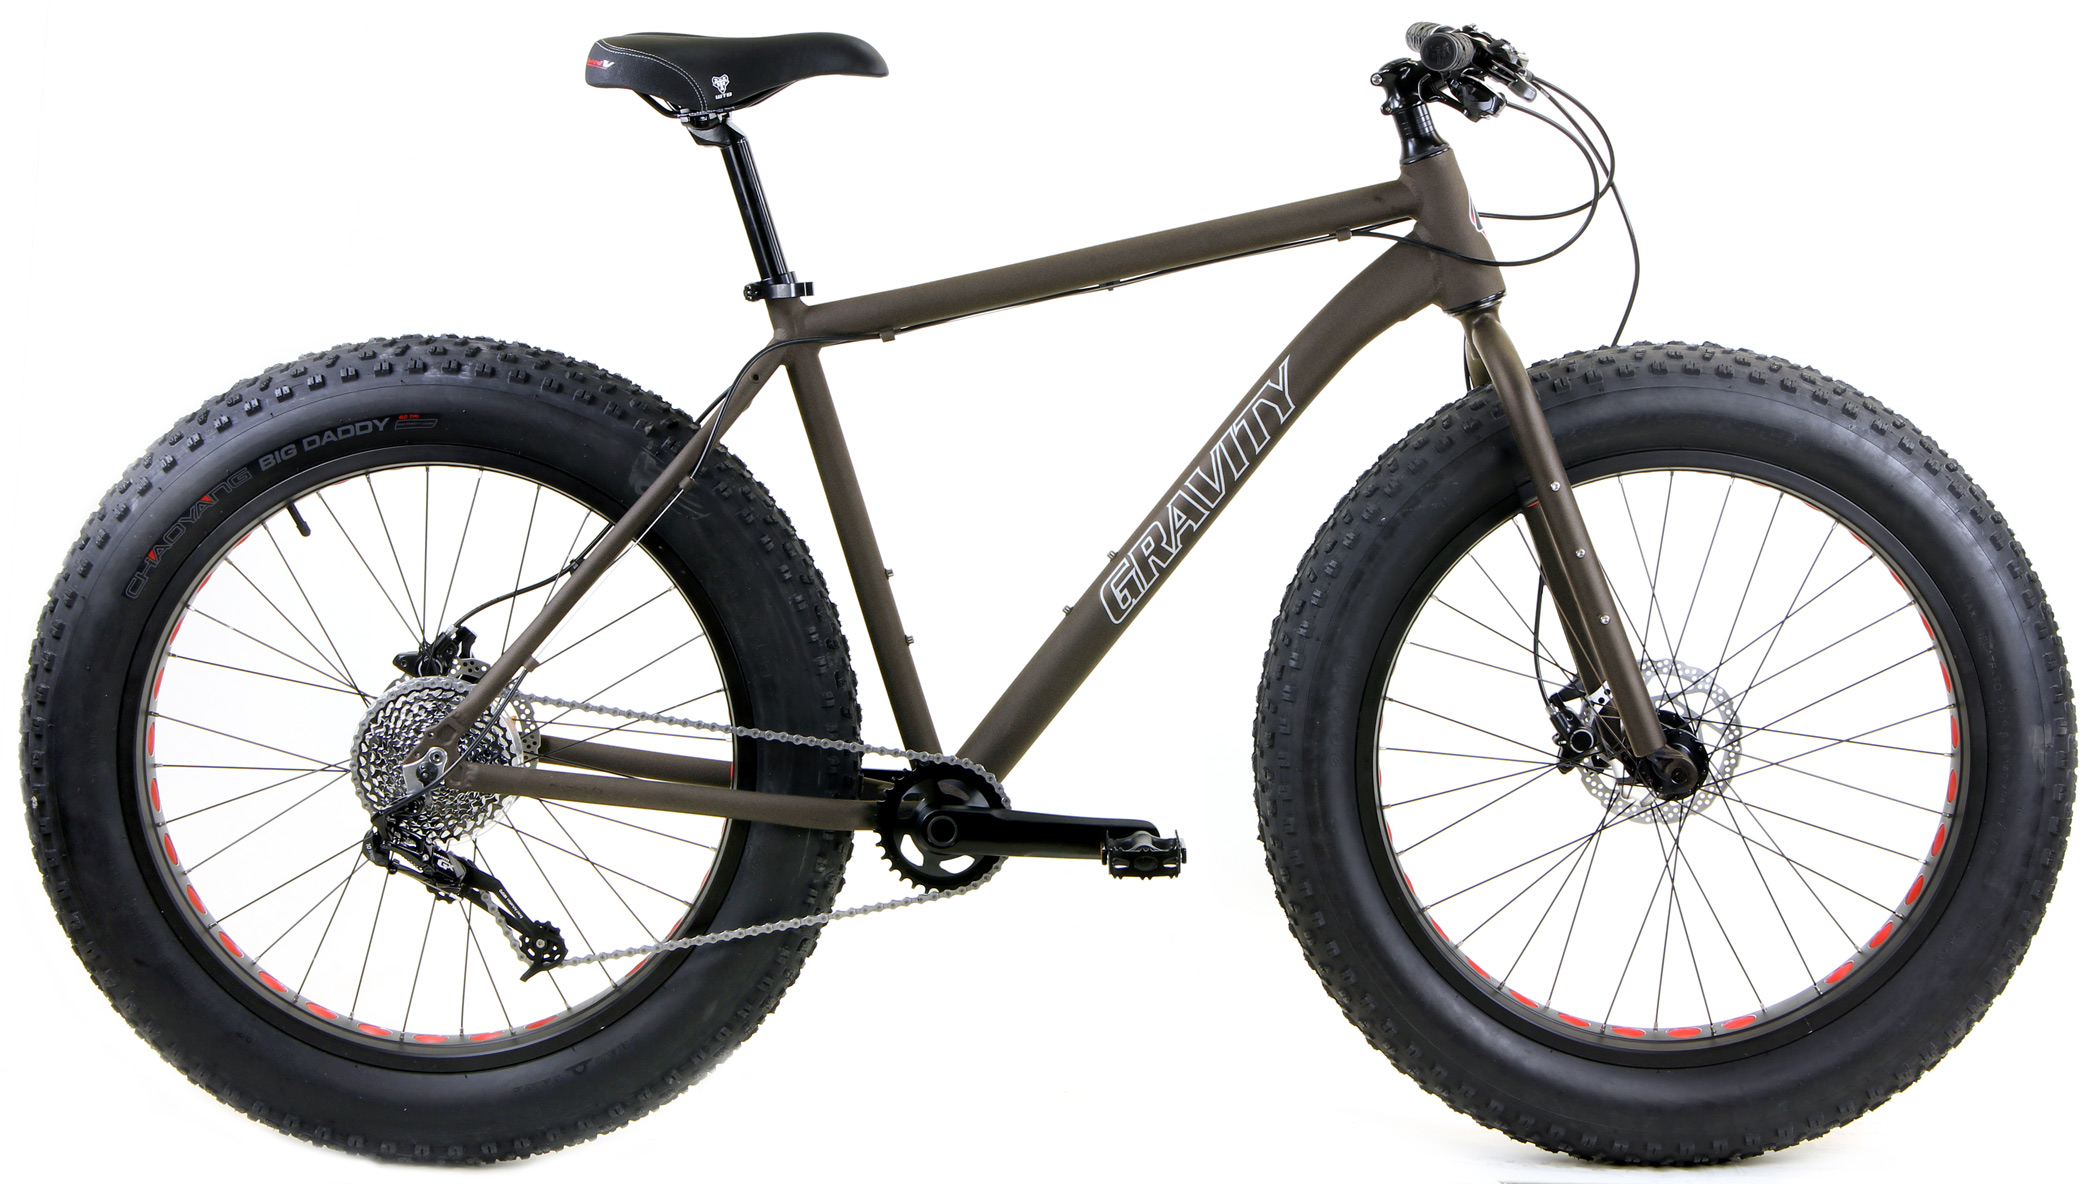 Bikes Gravity Bullseye Monster Five X SRAM GX 1X10 Spd Shimano HYDRAULIC Disk Brake Fat Bike Image